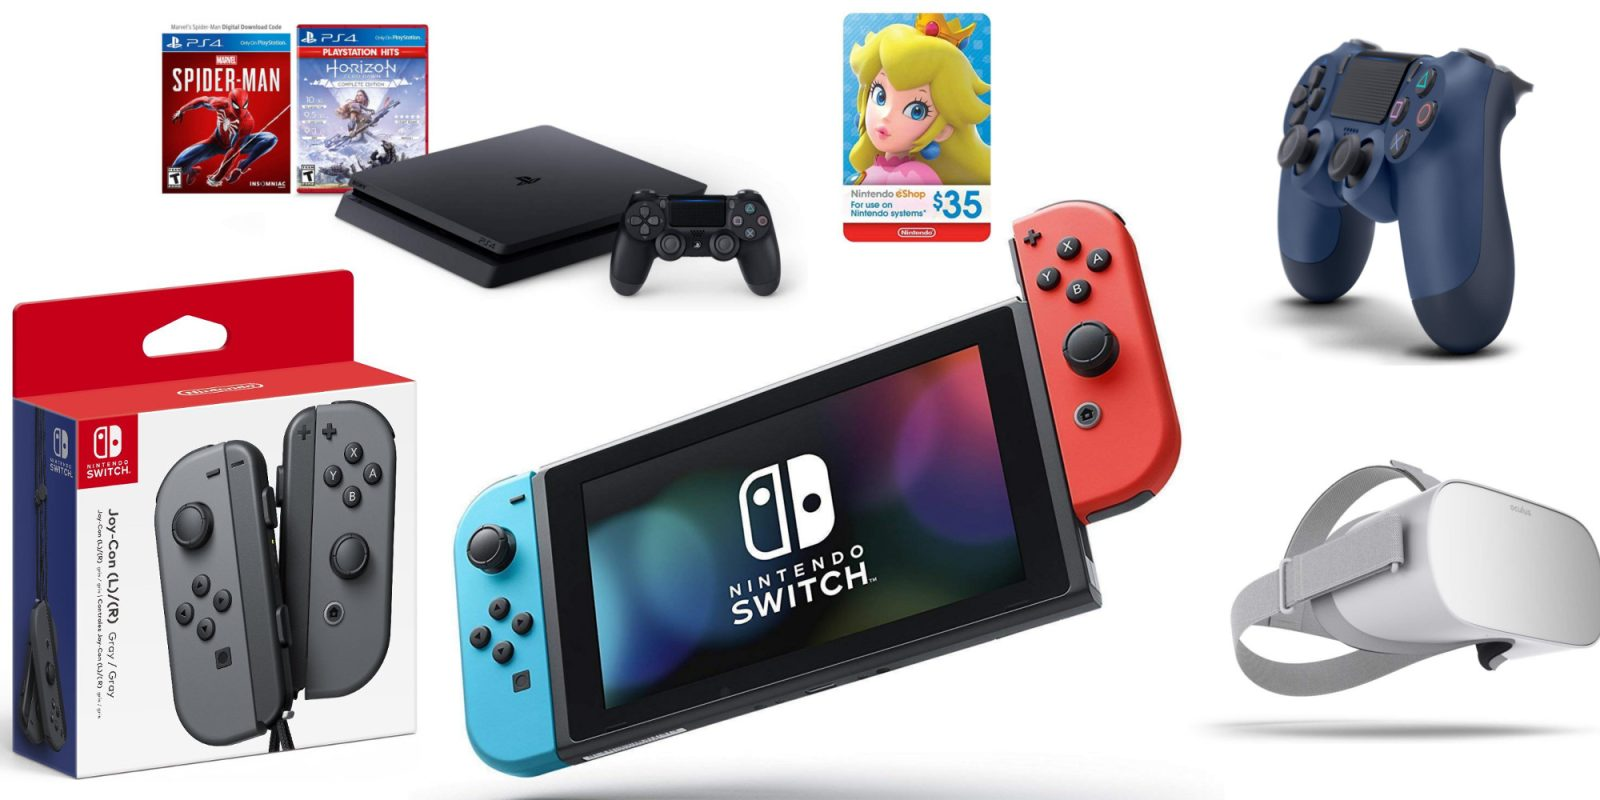 Prime Day 2019 gaming deals: Switch GC bundle $300, PS Plus